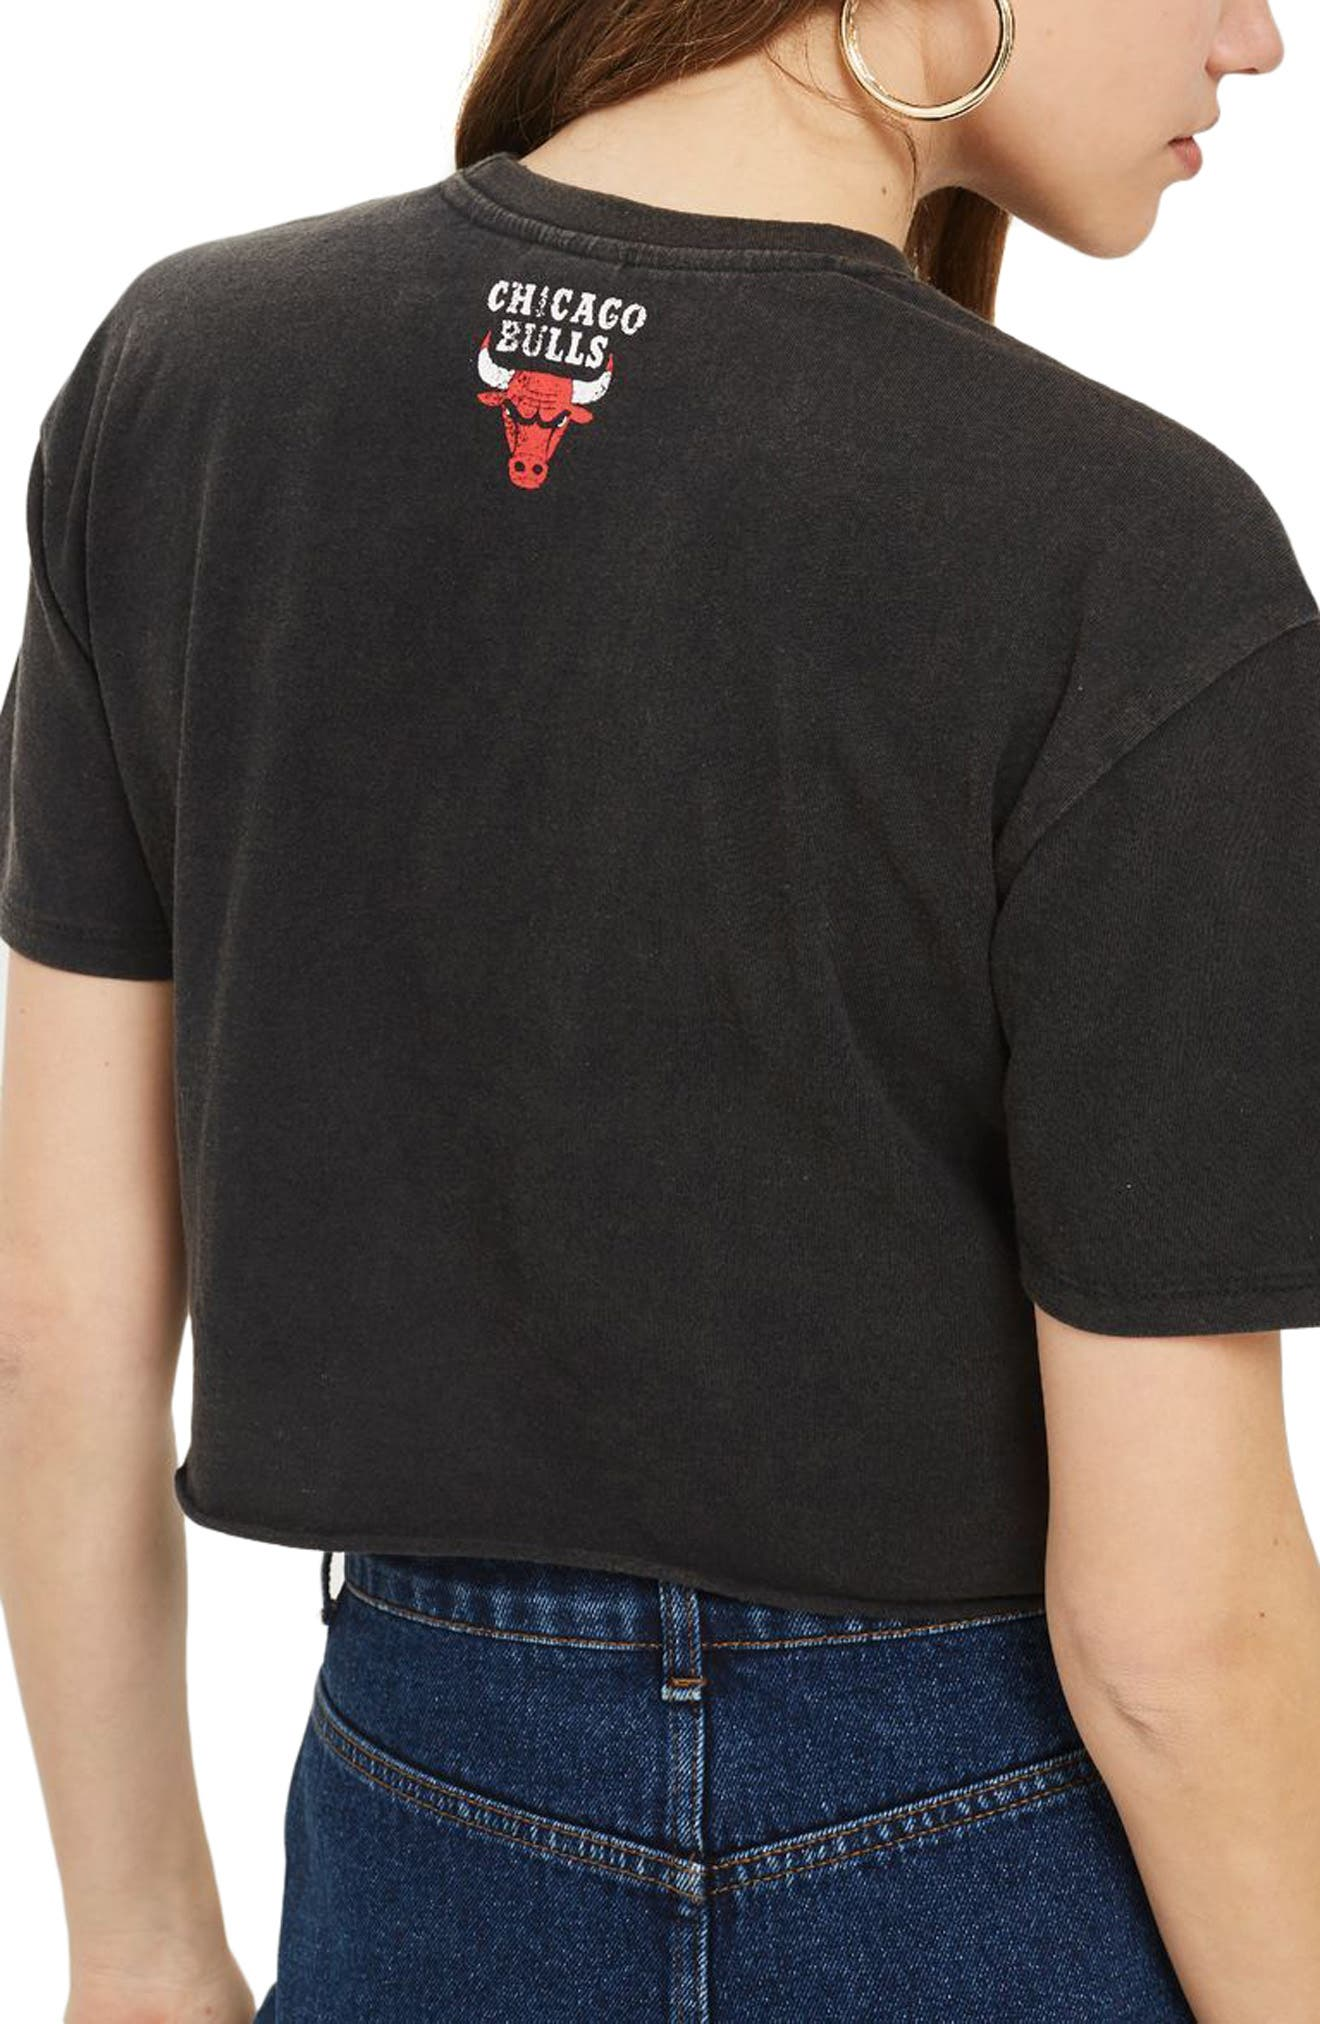 x UNK Bulls Crop Graphic Tee,                             Alternate thumbnail 3, color,                             Black Multi